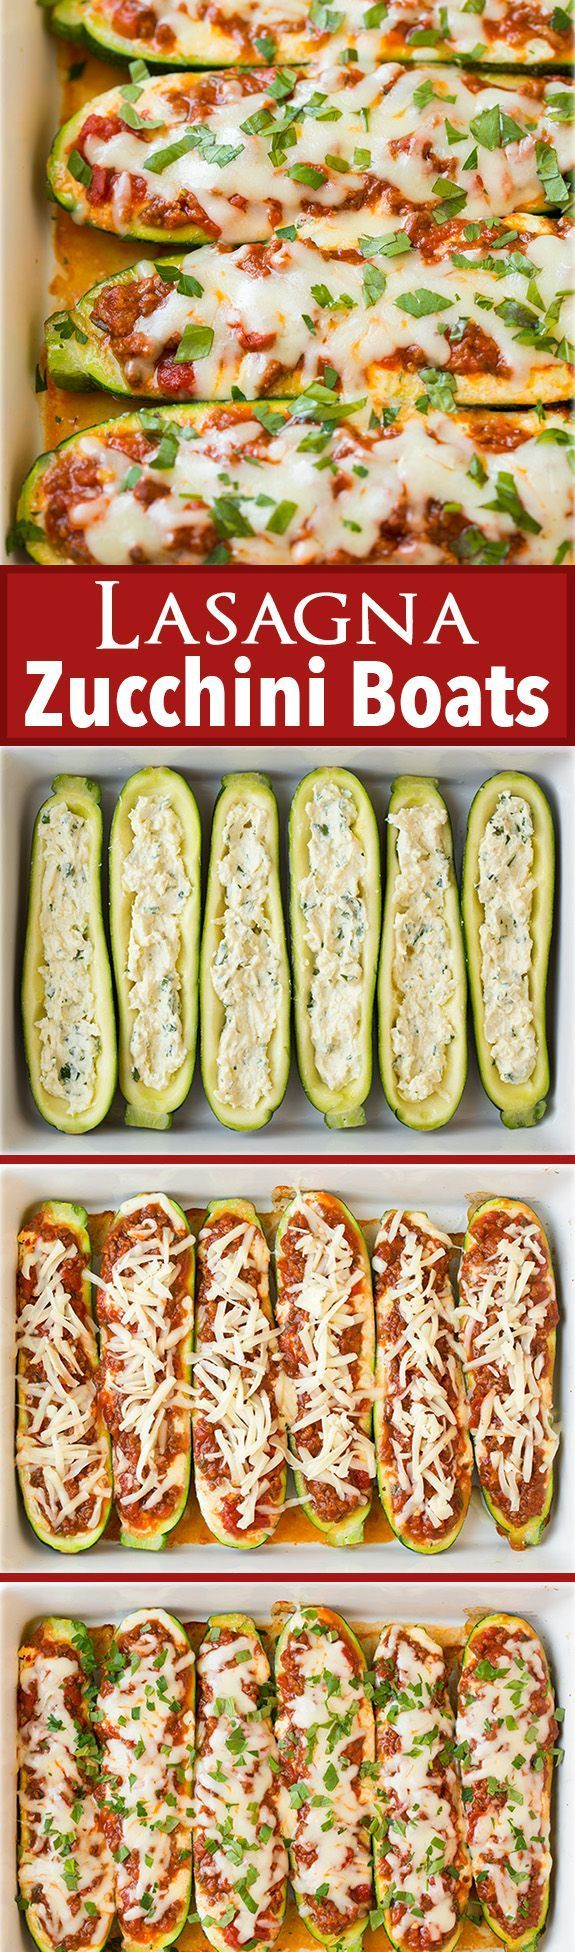 Lasagna Zucchini Boats - these are AMAZING!! Just as good as regular lasagna but healthier!